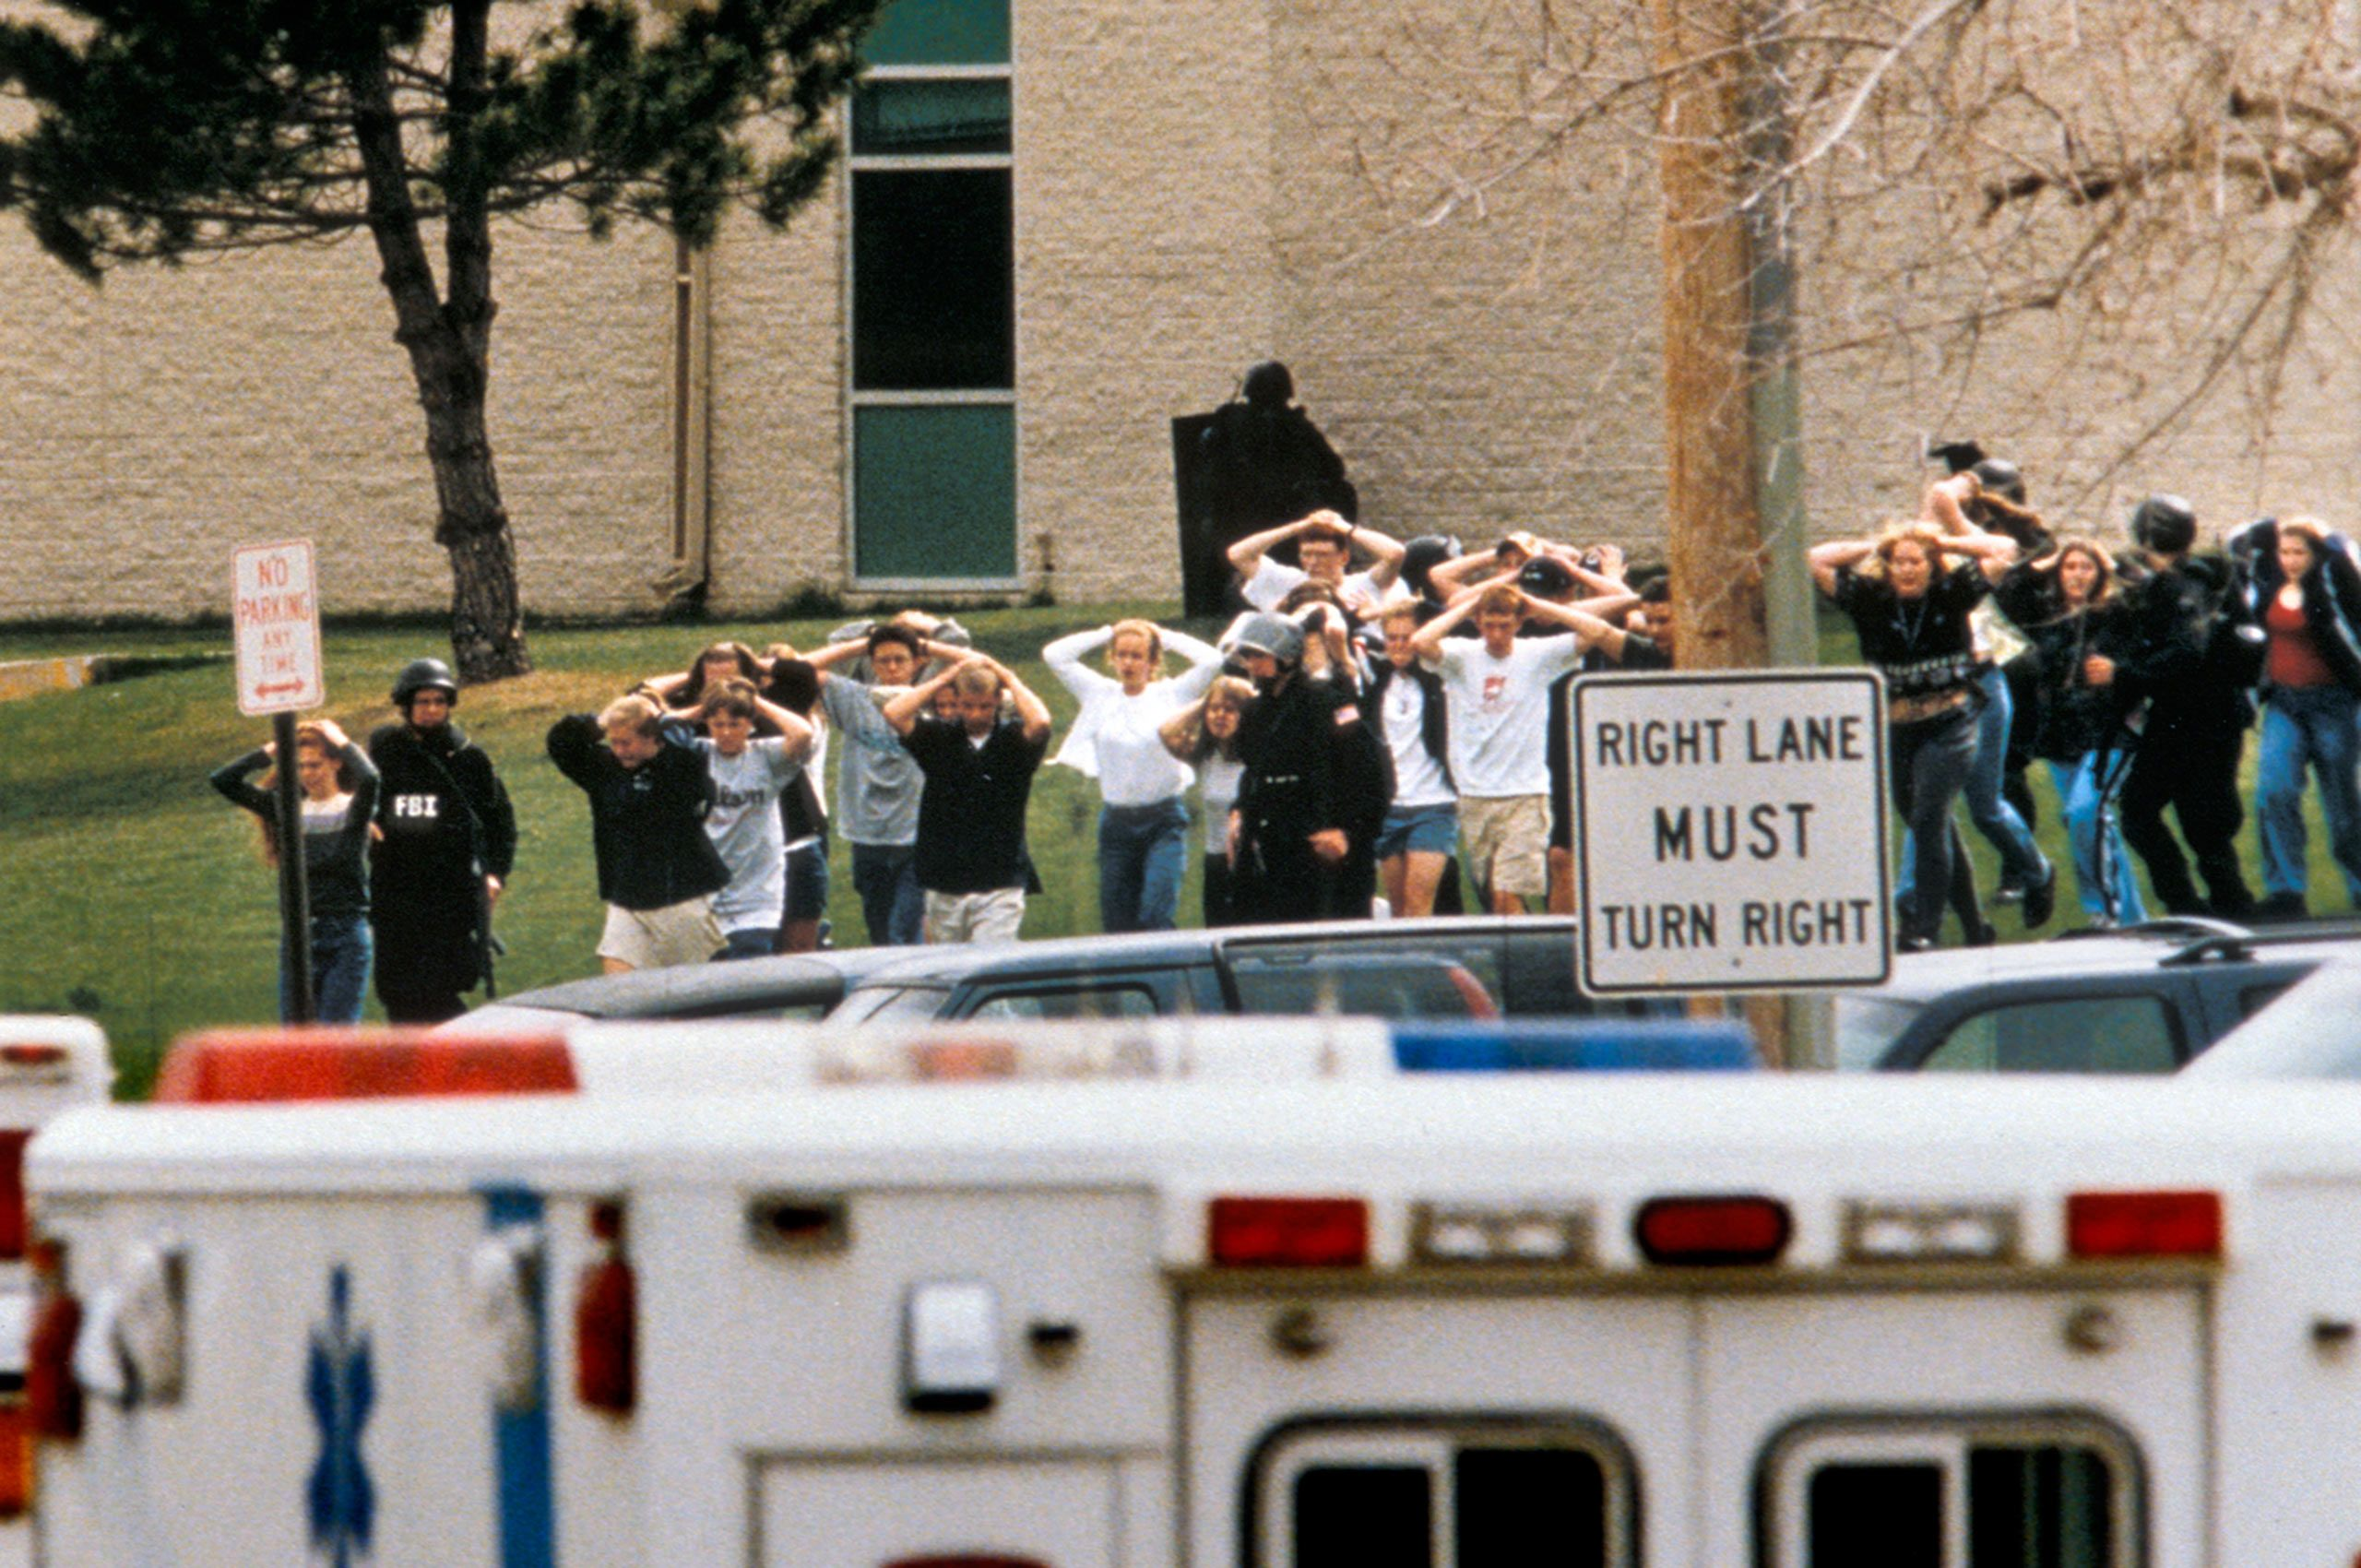 02BColumbine-HS-Students-Hands-Up-Evacuated.jpg